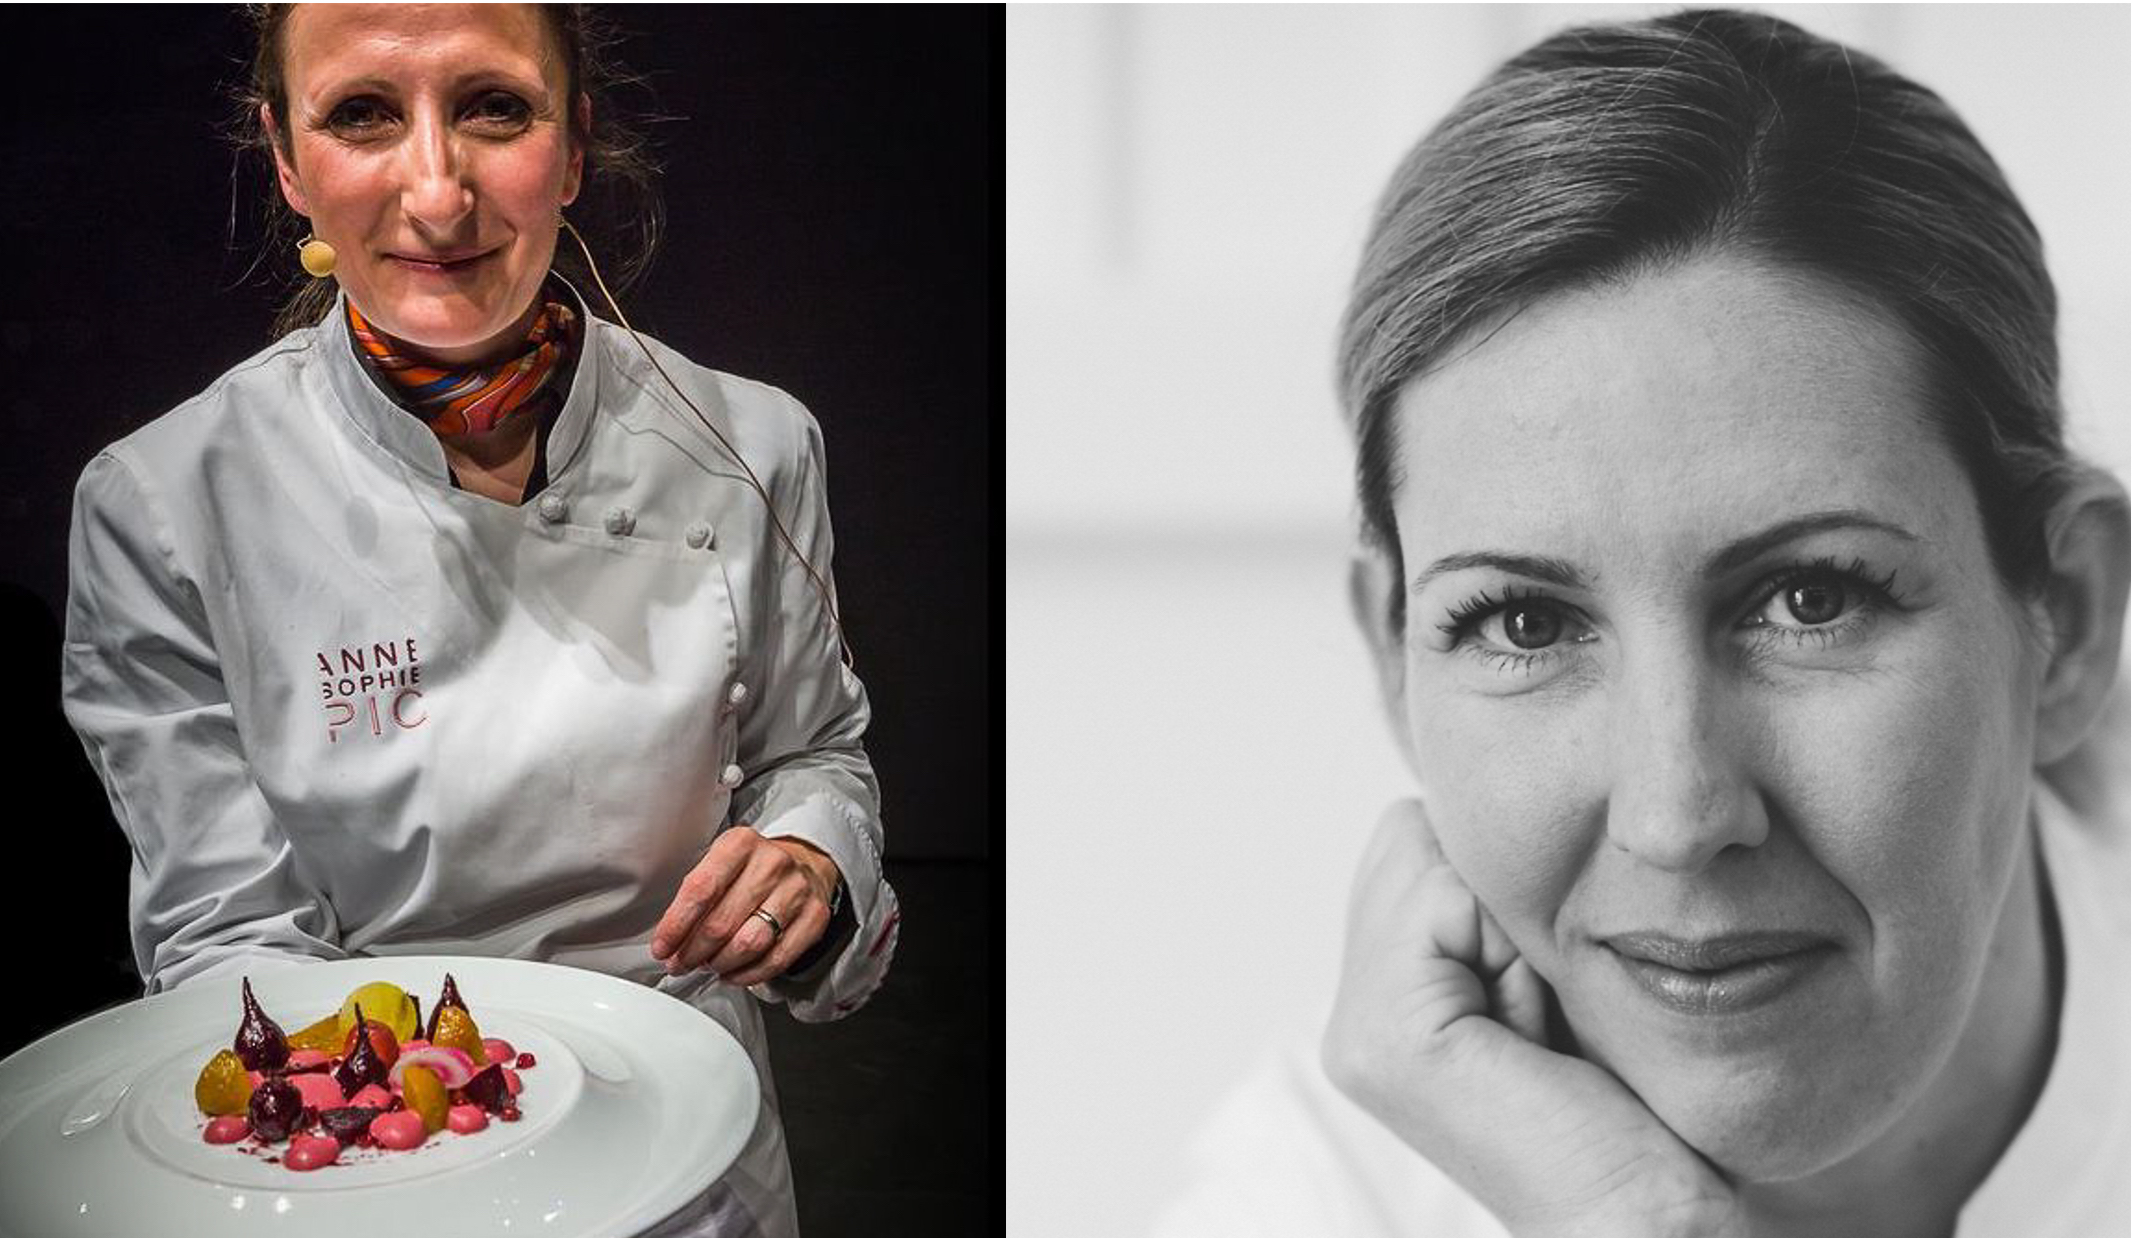 Michelin-starred restaurant chefs Clare Smyth of Core and Anne Sophie Pic of Le Dame de Pic will collaborate for an International Women's Day dinner